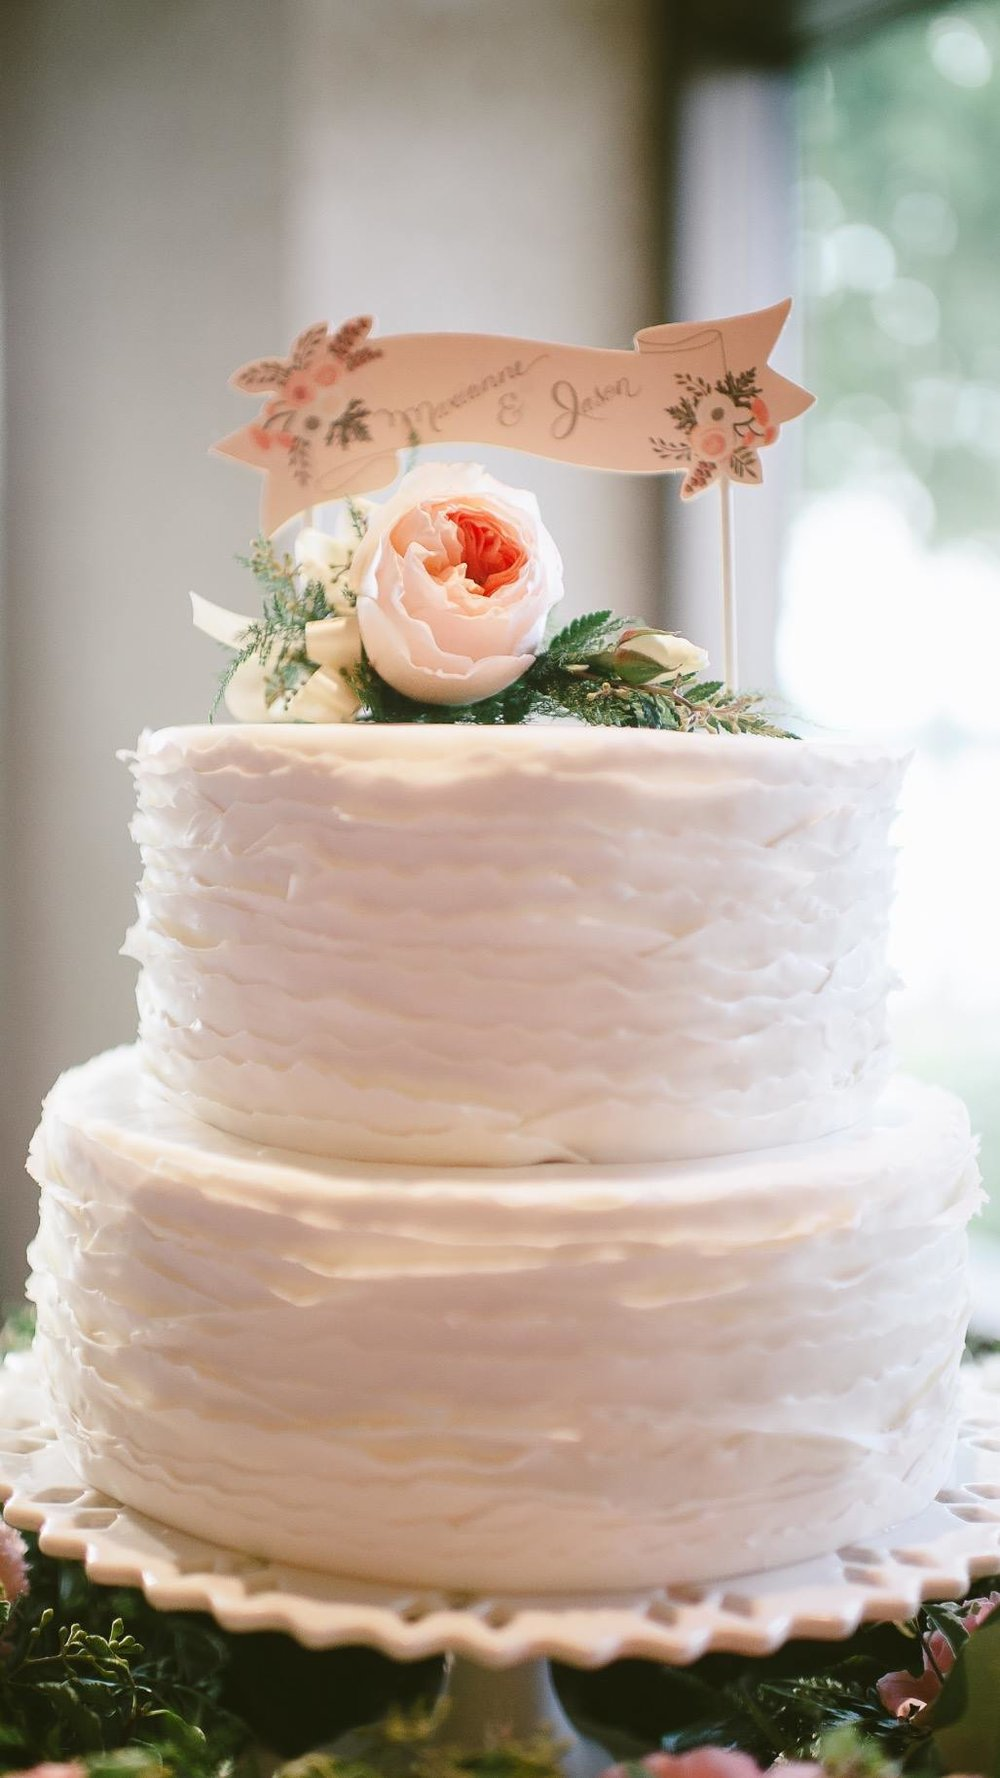 Classic White Rustic Fondant Cake by Meringue Bakery in La Crosse, WI